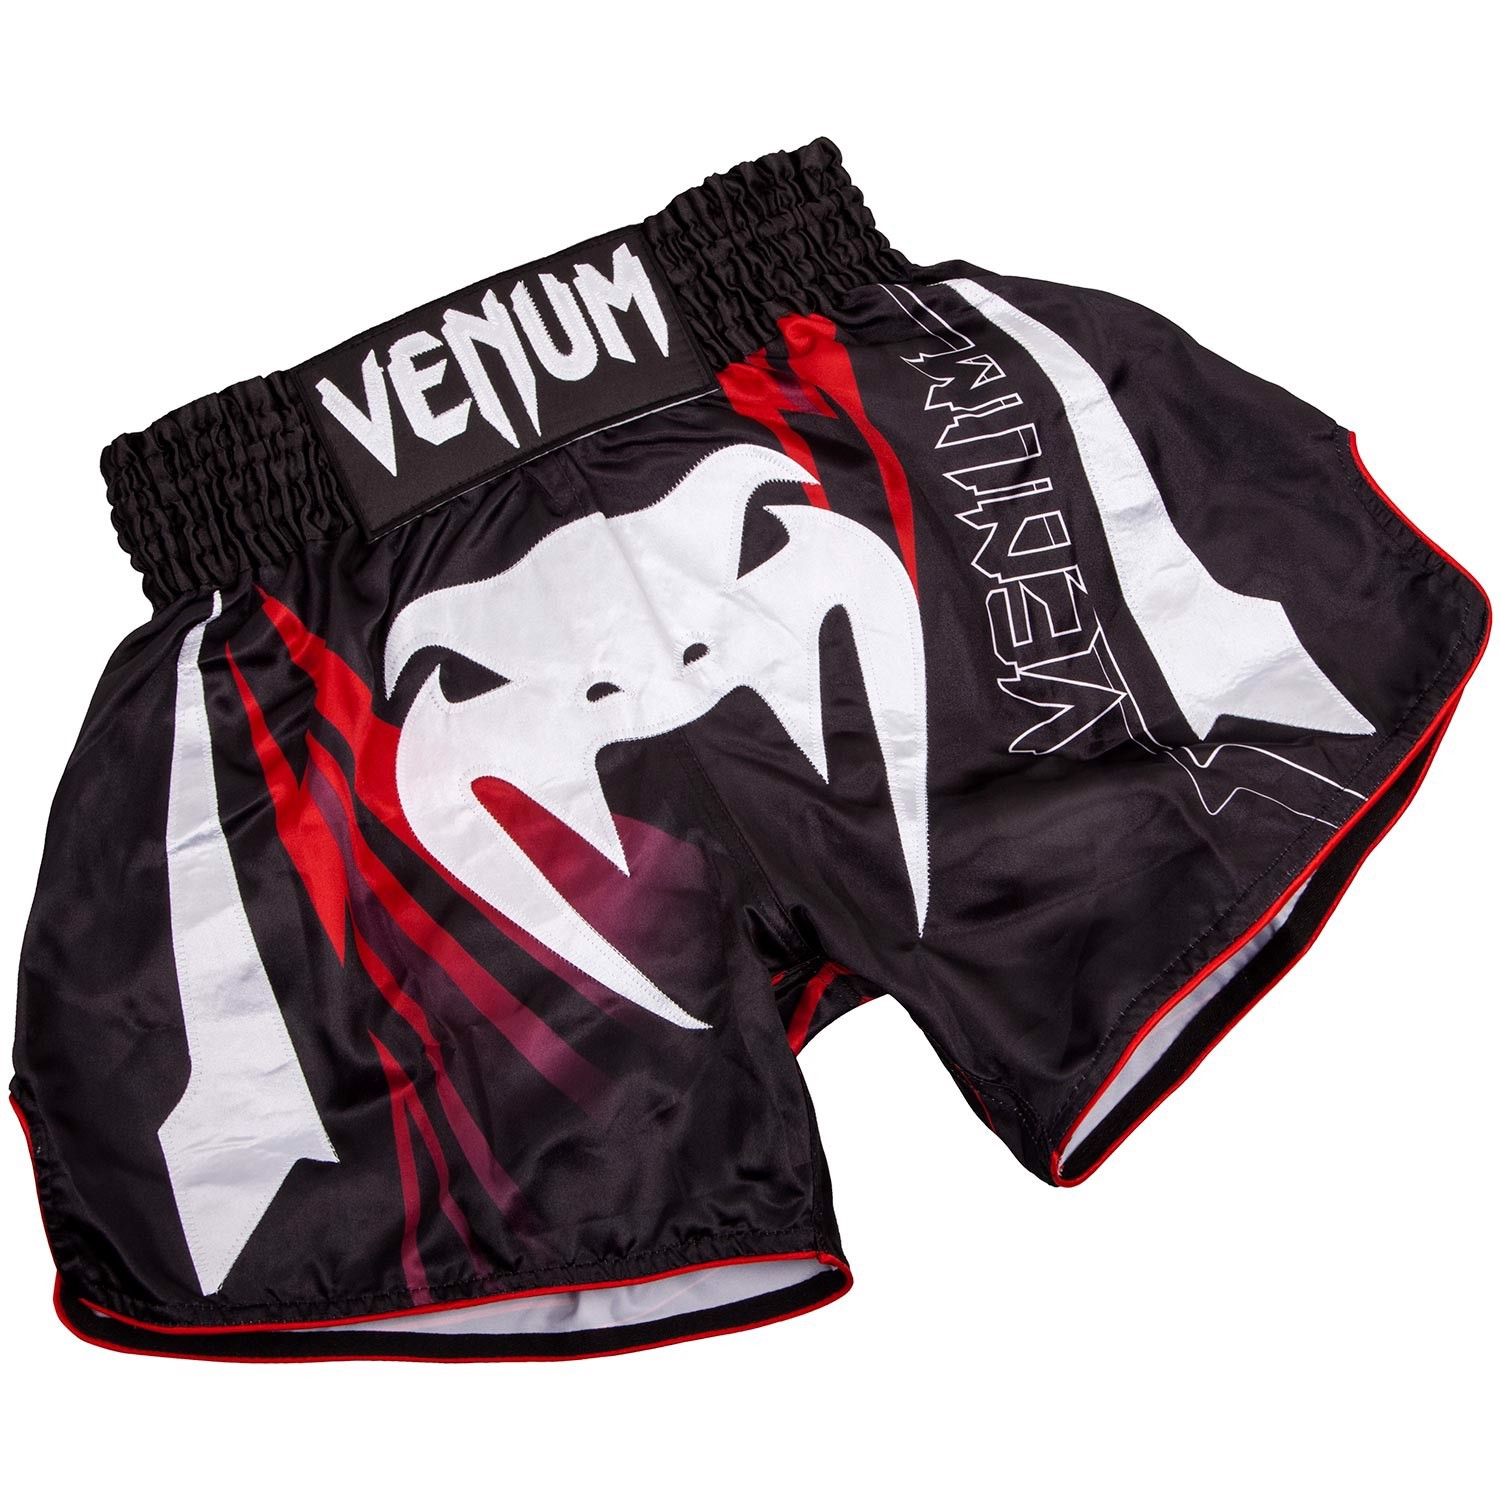 Quần Venum SHARP 3.0 Muay Thai Shorts - Black/Red 02990